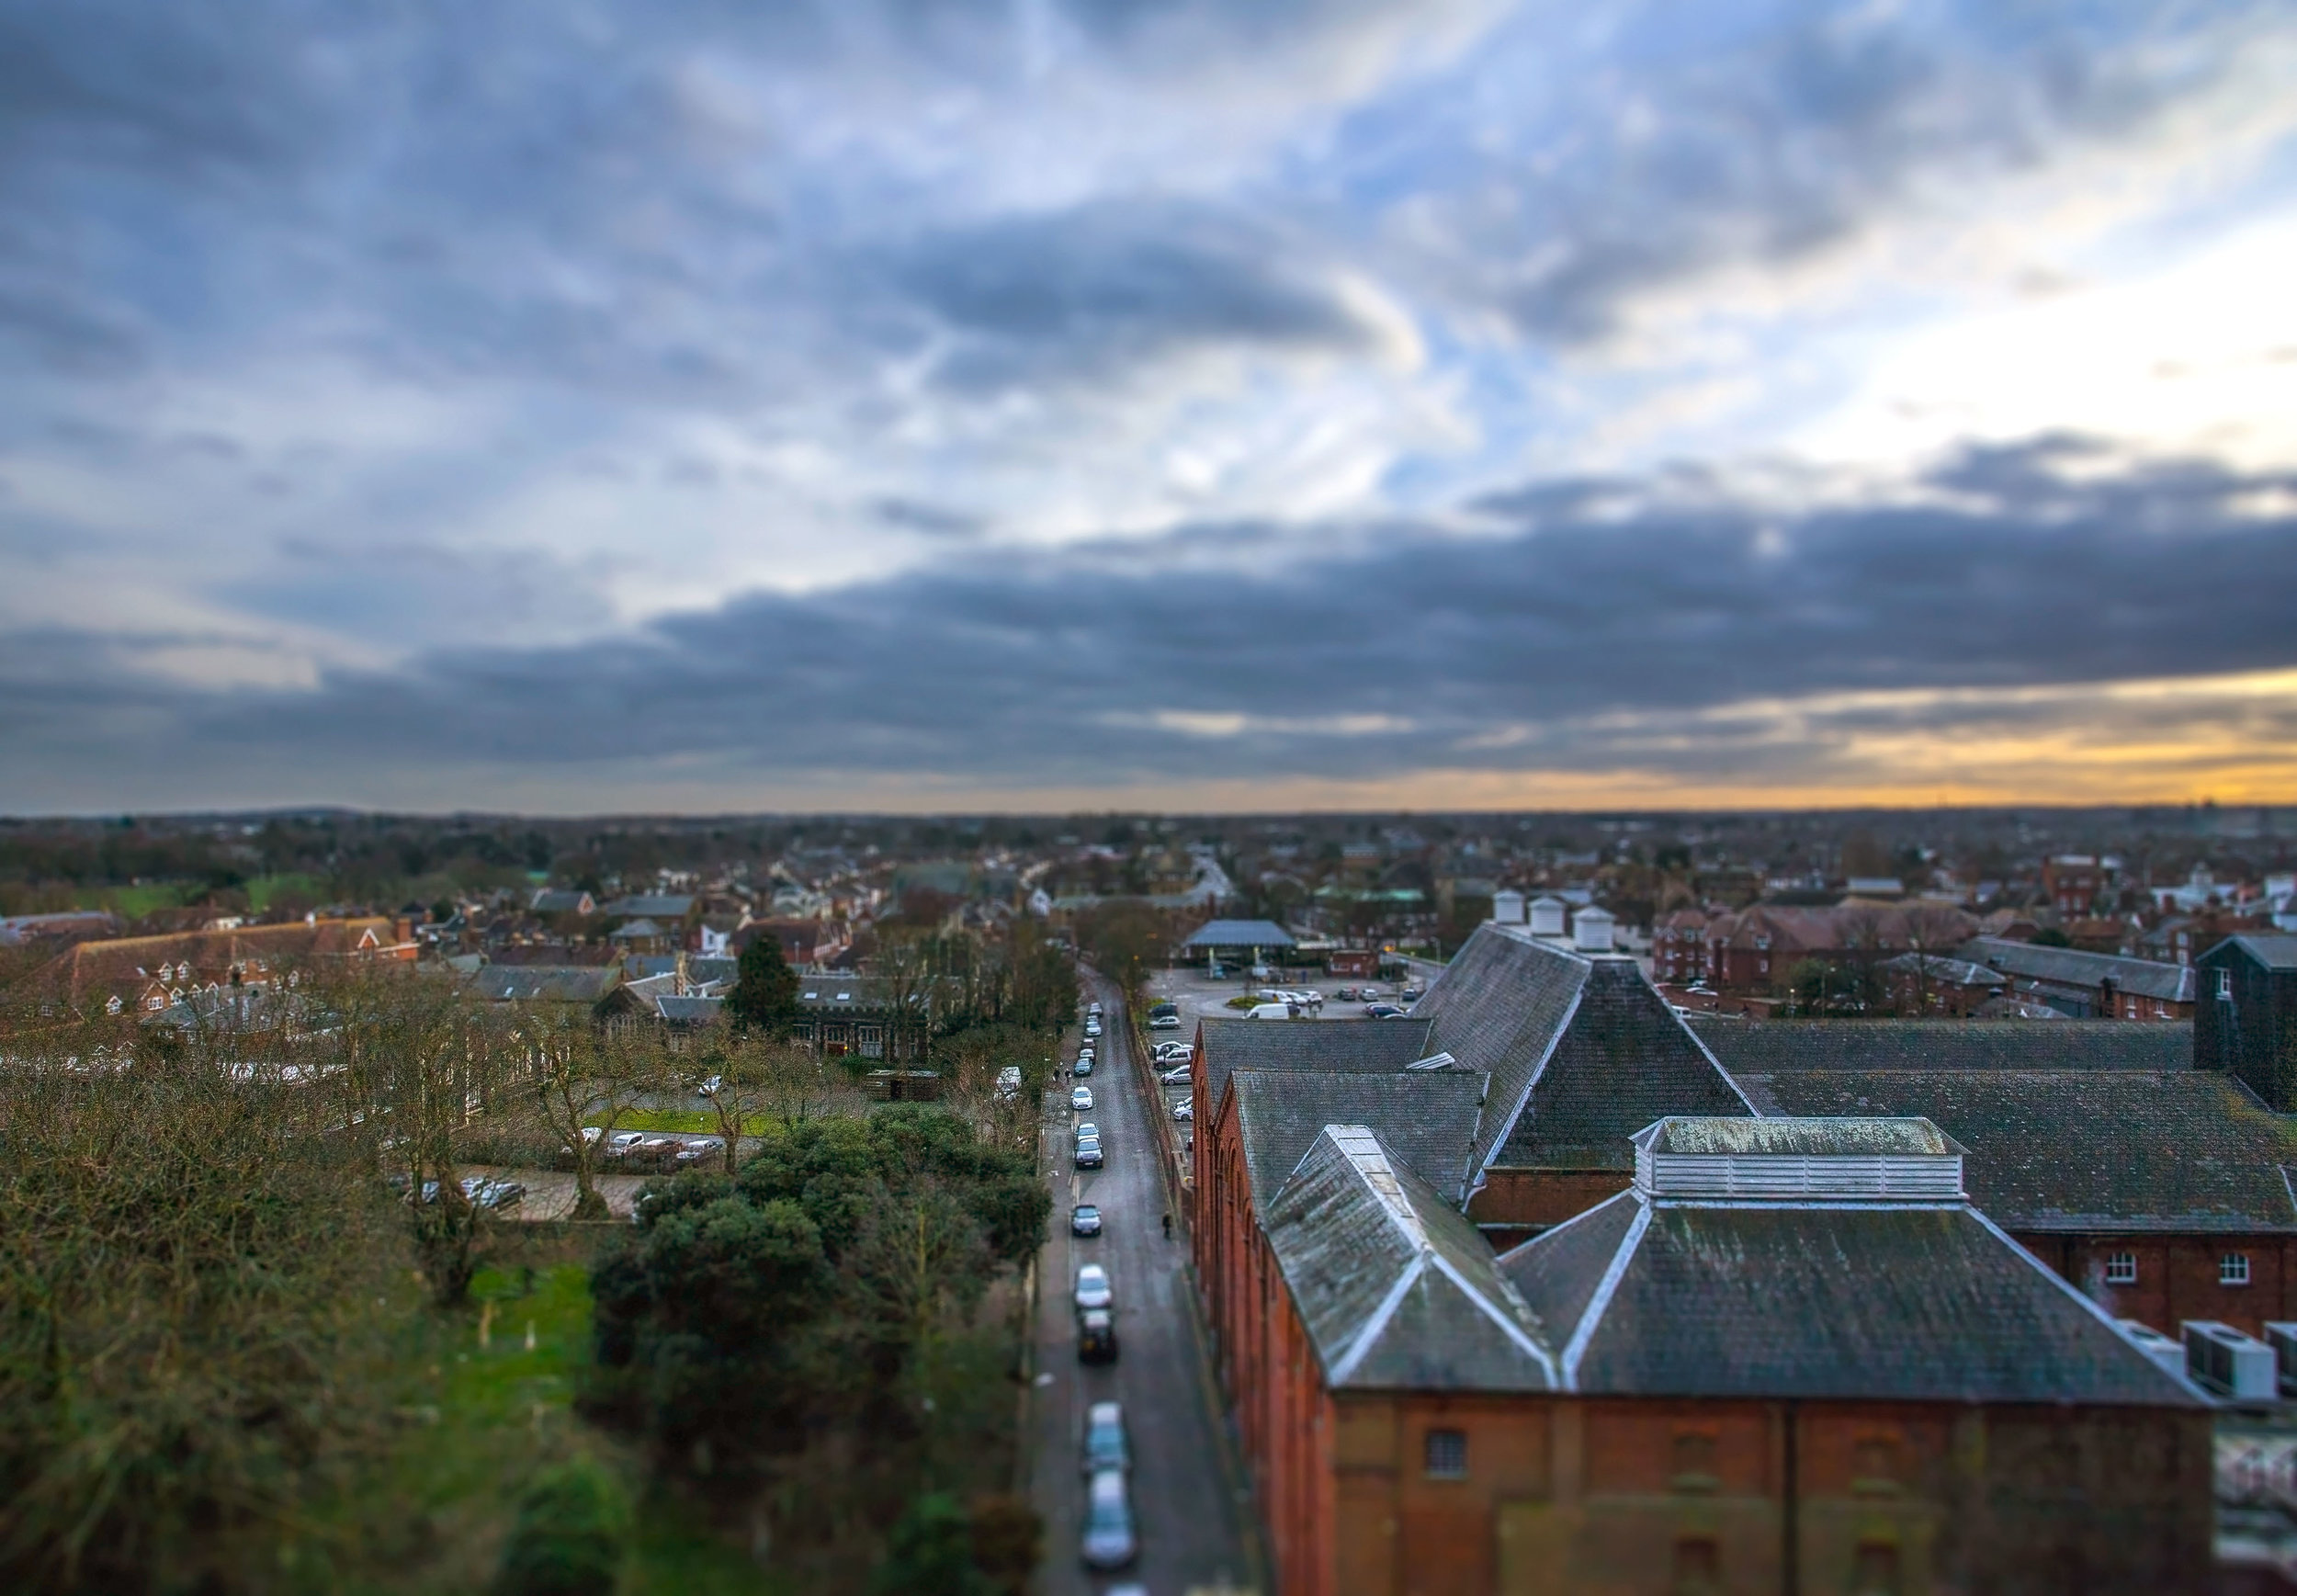 Looking towards the railway station. I've applied a tilt-shift effect to this panorama. I like the way this focuses the eye and draws you in to look at the detail.